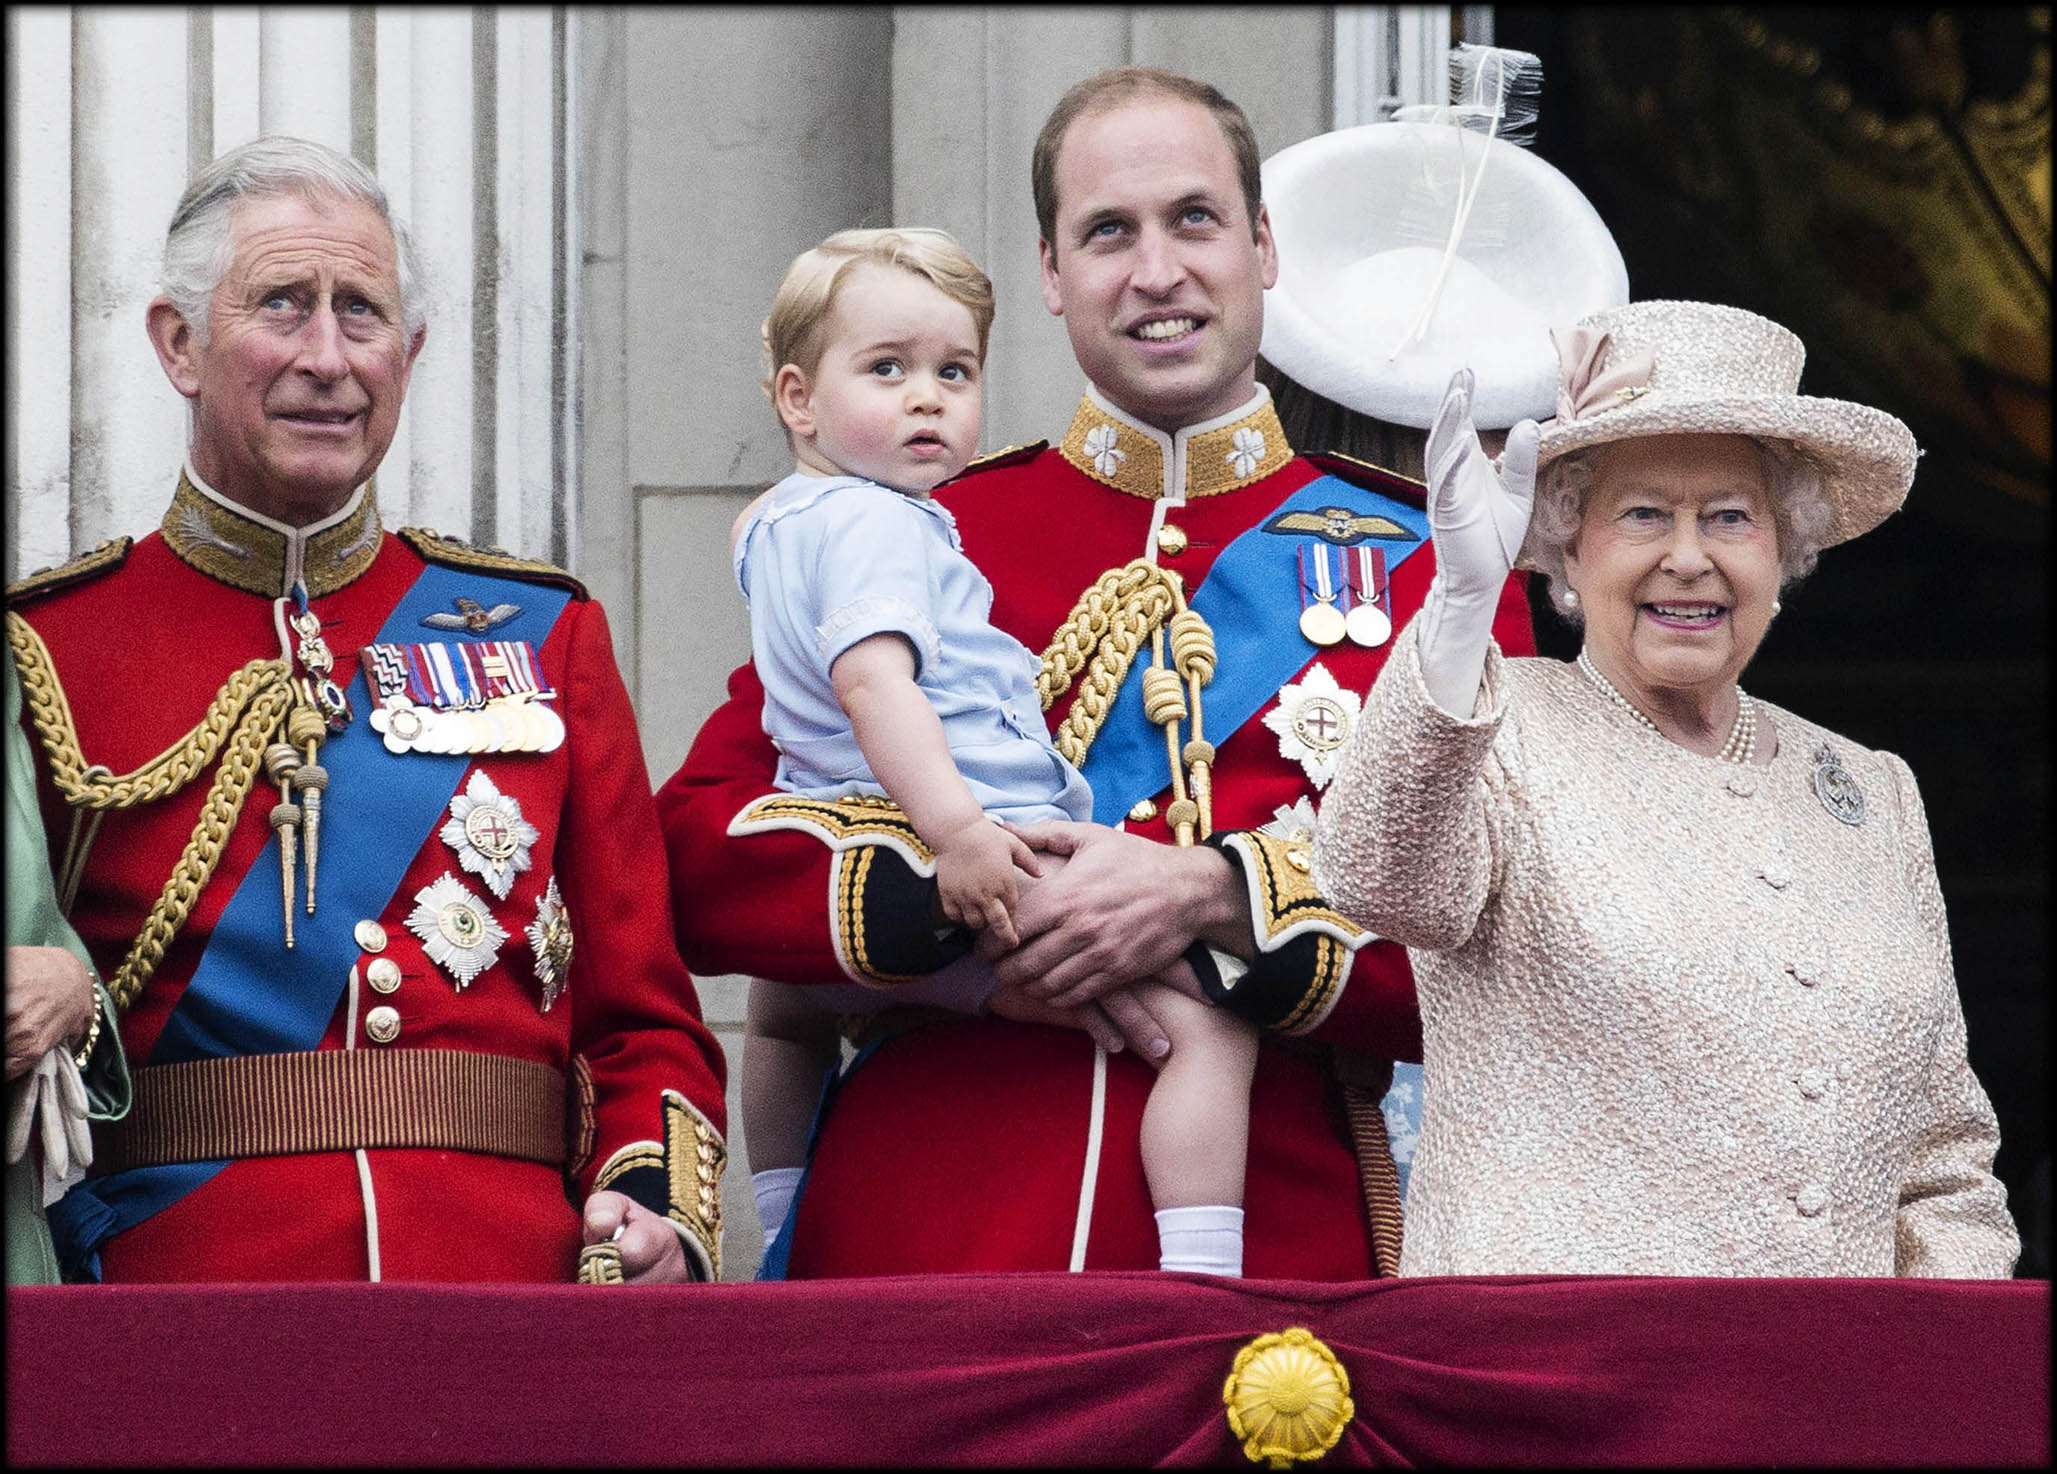 queen and three kings-in-waiting